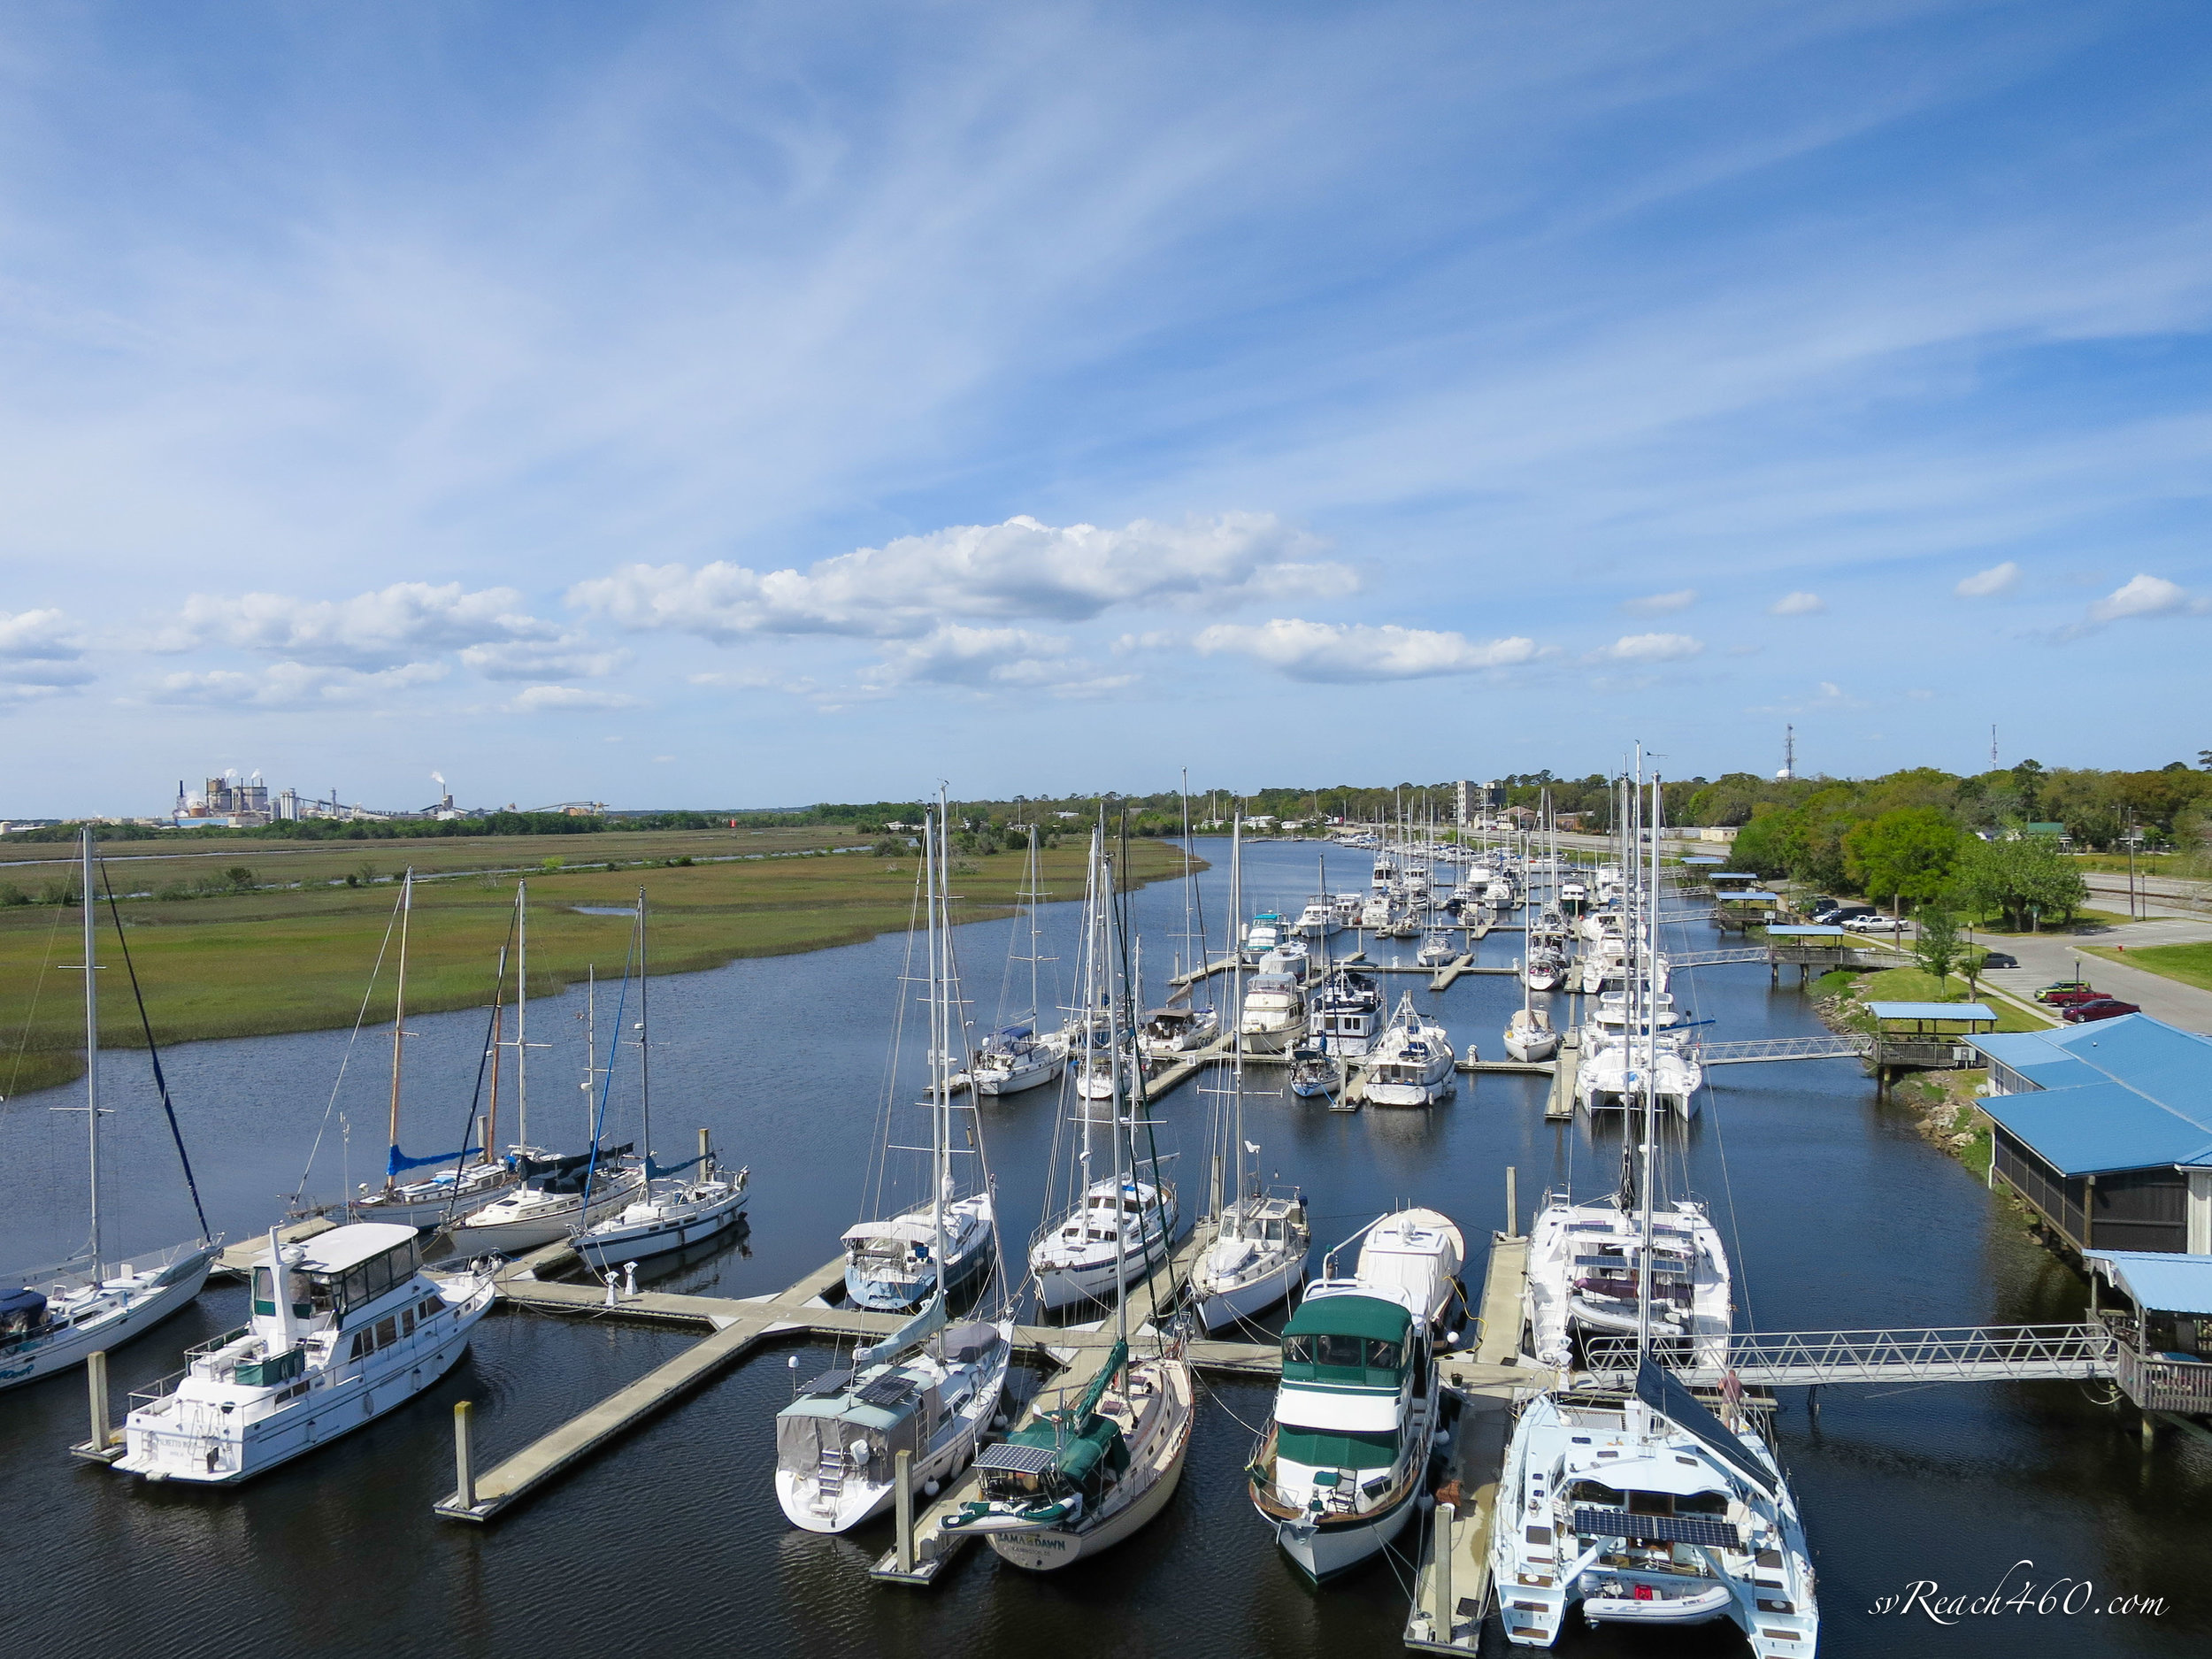 Marina protected by the marshes